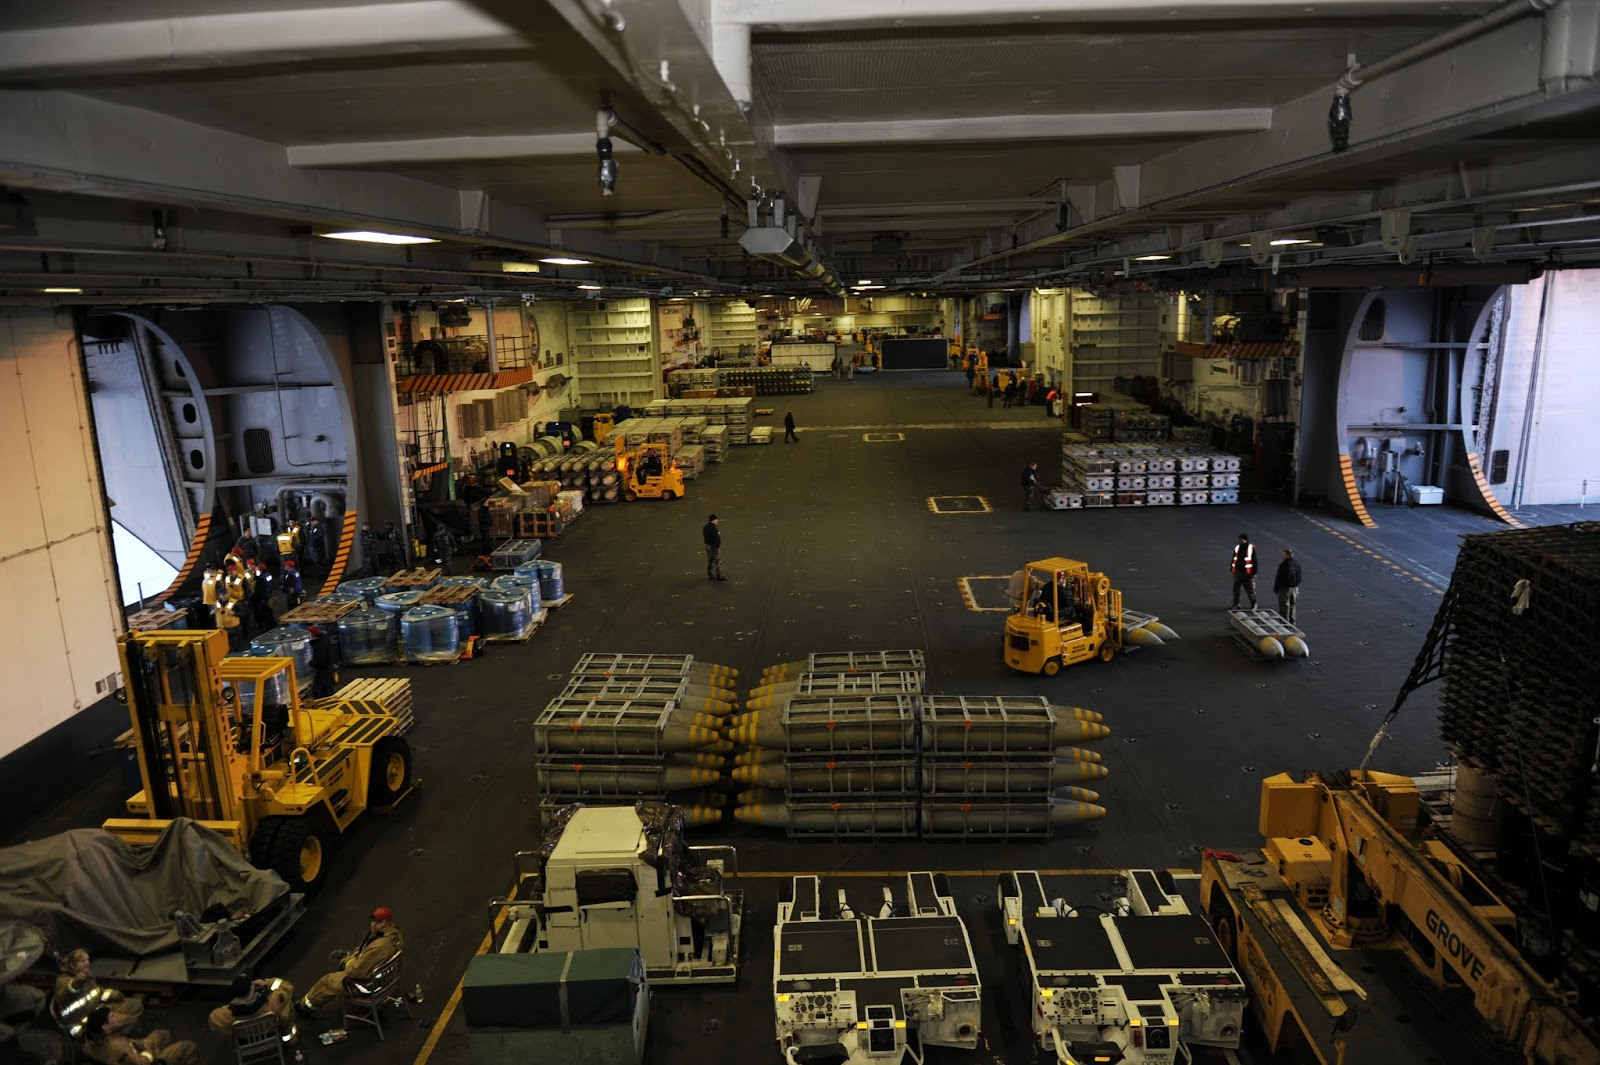 Similar hanger bay on board the Nimitz class John C. Stennis CVN 74